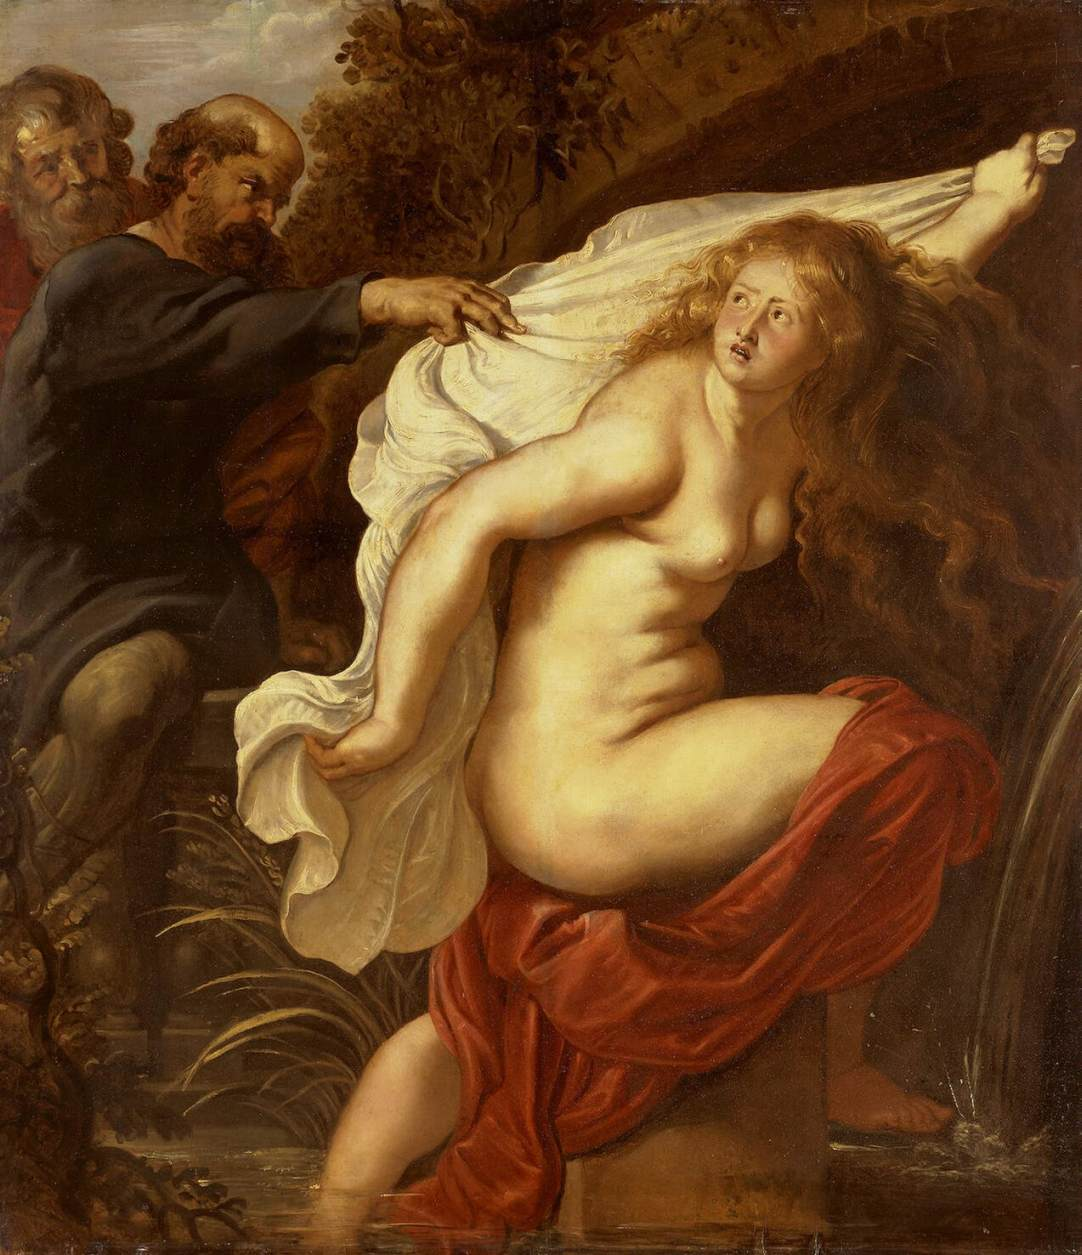 http://uploads3.wikipaintings.org/images/peter-paul-rubens/susanna-and-the-elders-1.jpg